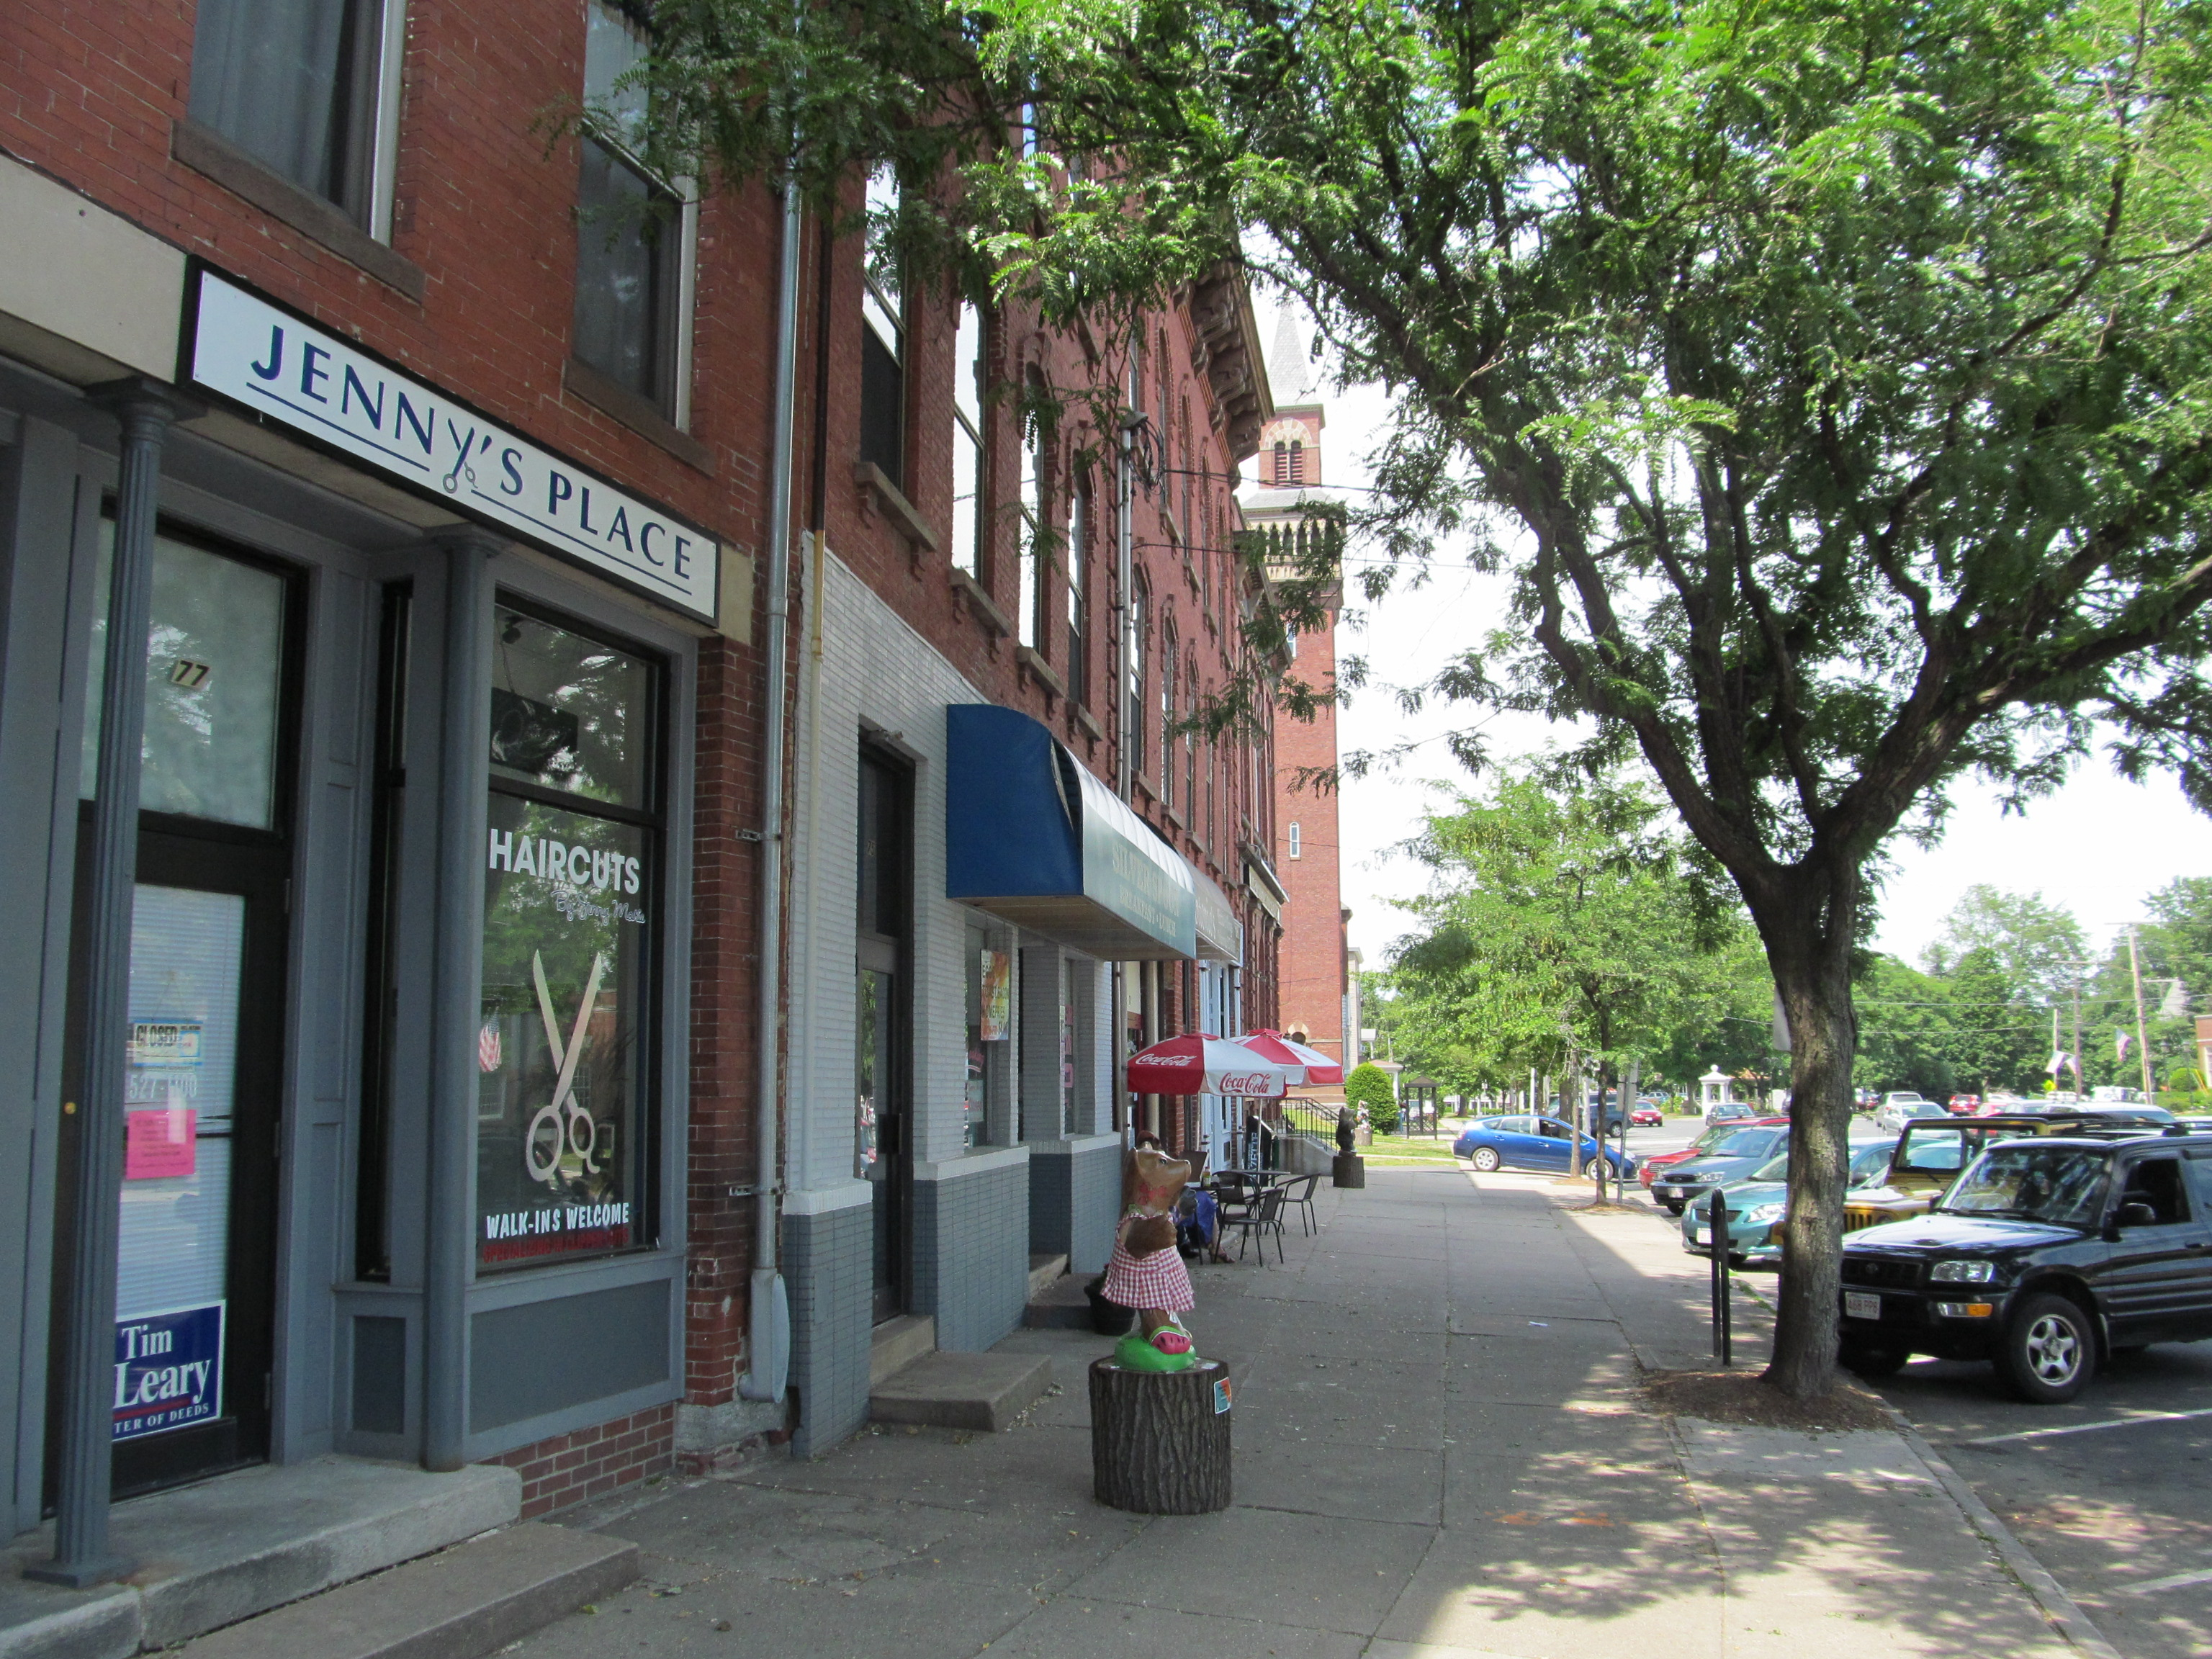 Gay matchmaking services near avon center oh